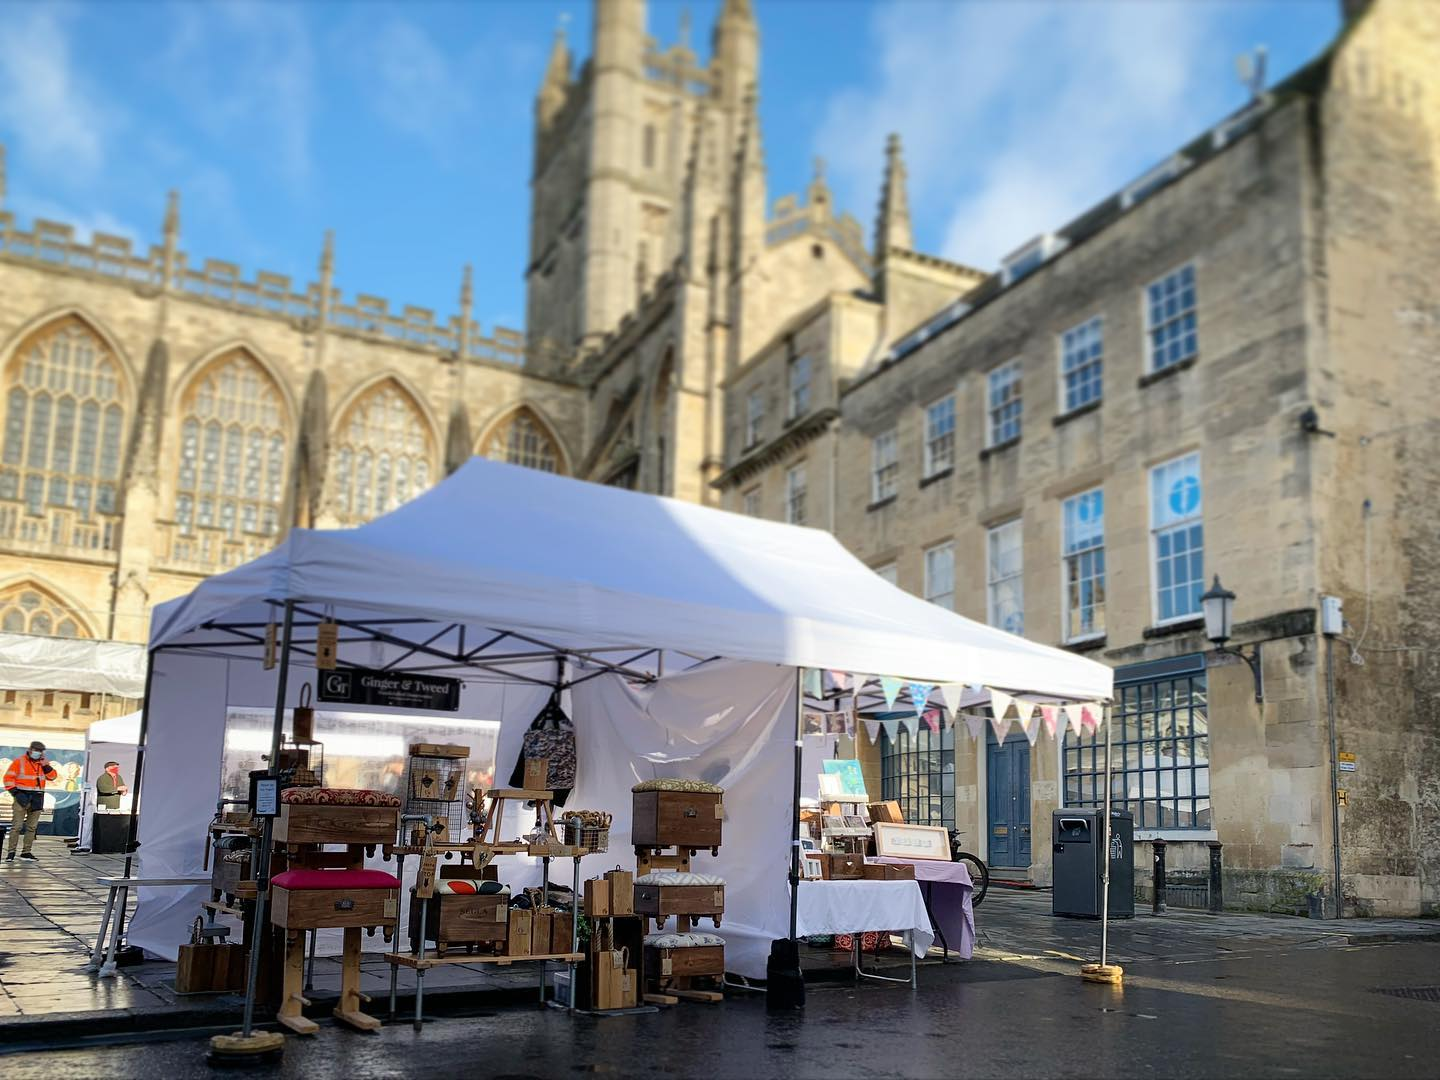 What a glorious day! ...#bathabbey #gingerandtweed #bathatchristmas #bathchristmasmarket #shopsmall #shoplocal #handcrafted #homedecor